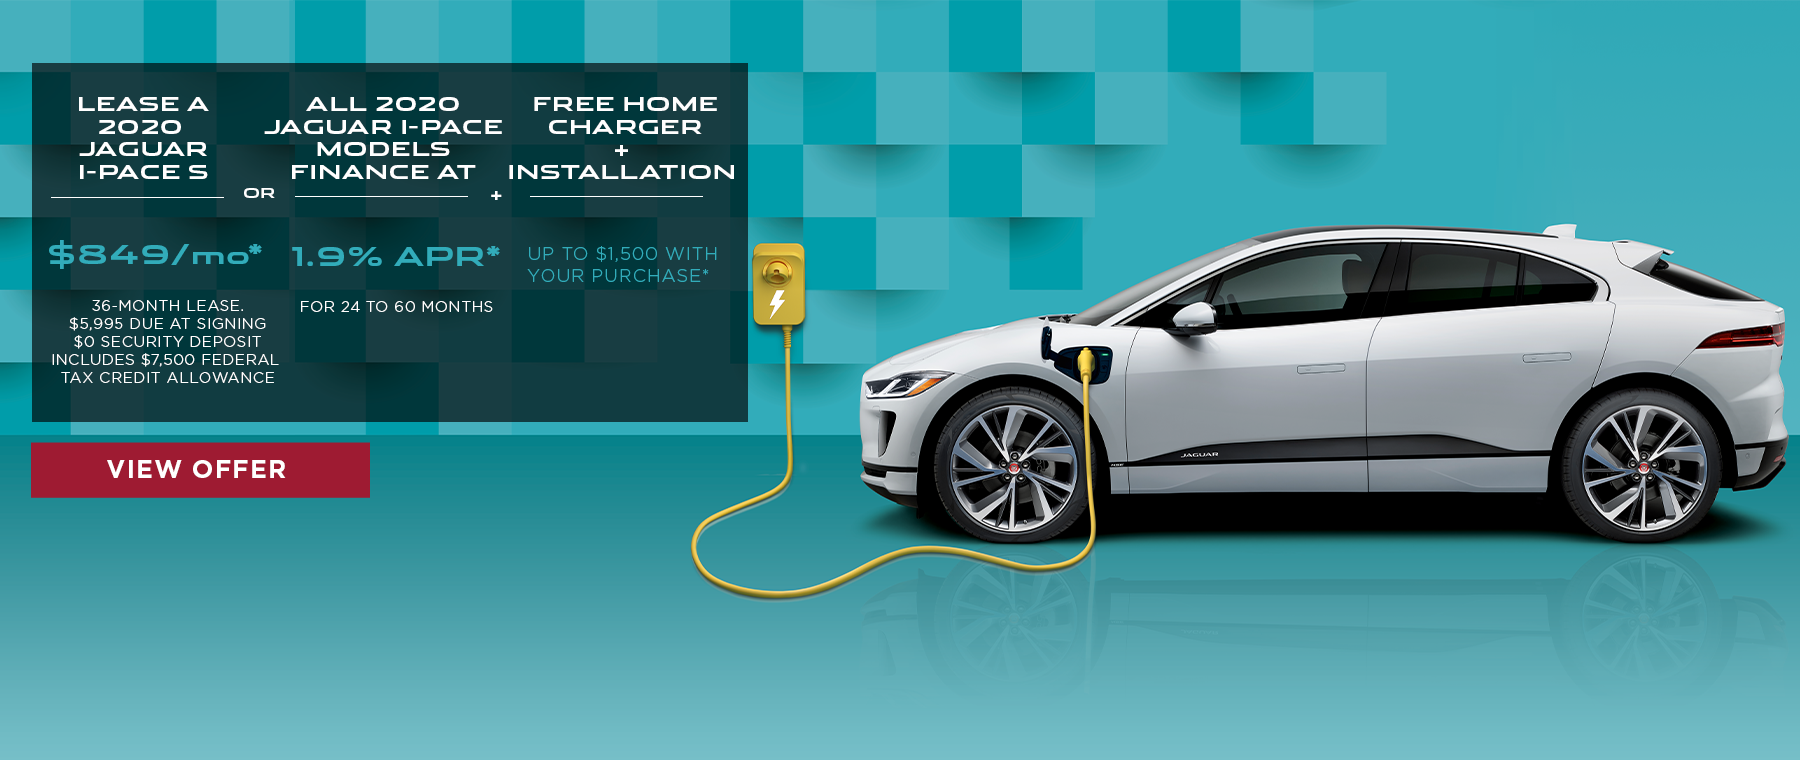 2020 Jaguar I-Pace all electric vehicle special offer click to view